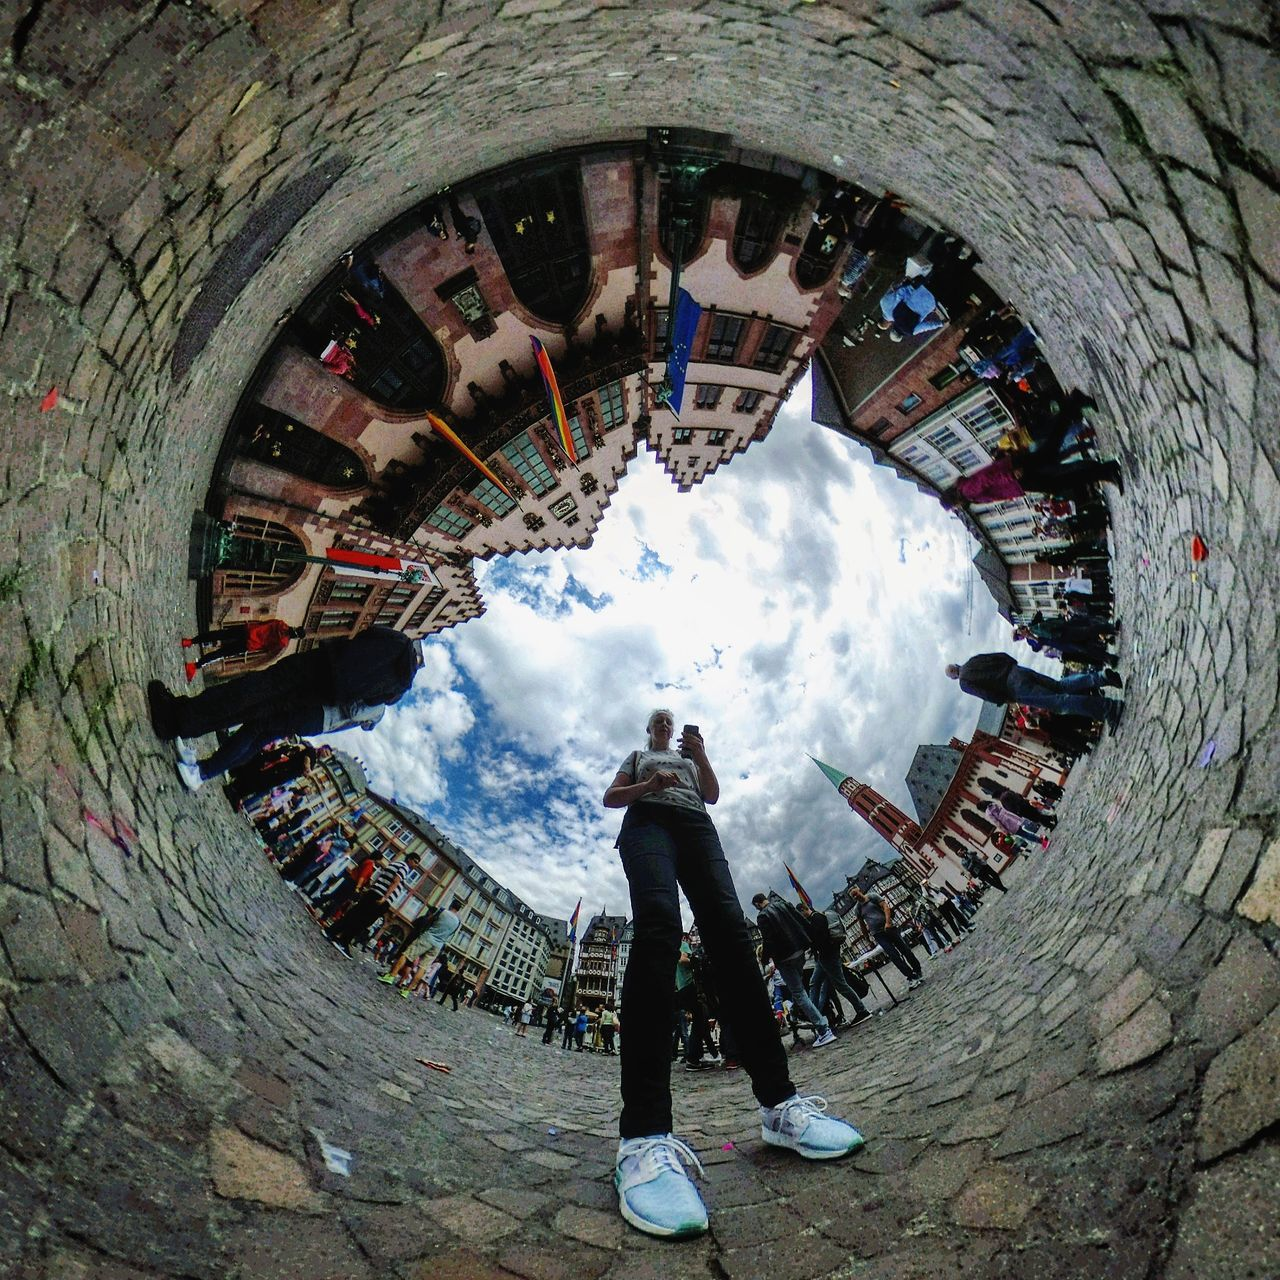 Howdy... Theta360 Real People One Person Full Length Day Cloud - Sky Fish-eye Lens Leisure Activity Outdoors Lifestyles People Sky Architecture Adult Adults Only Thetameetfrankfurt